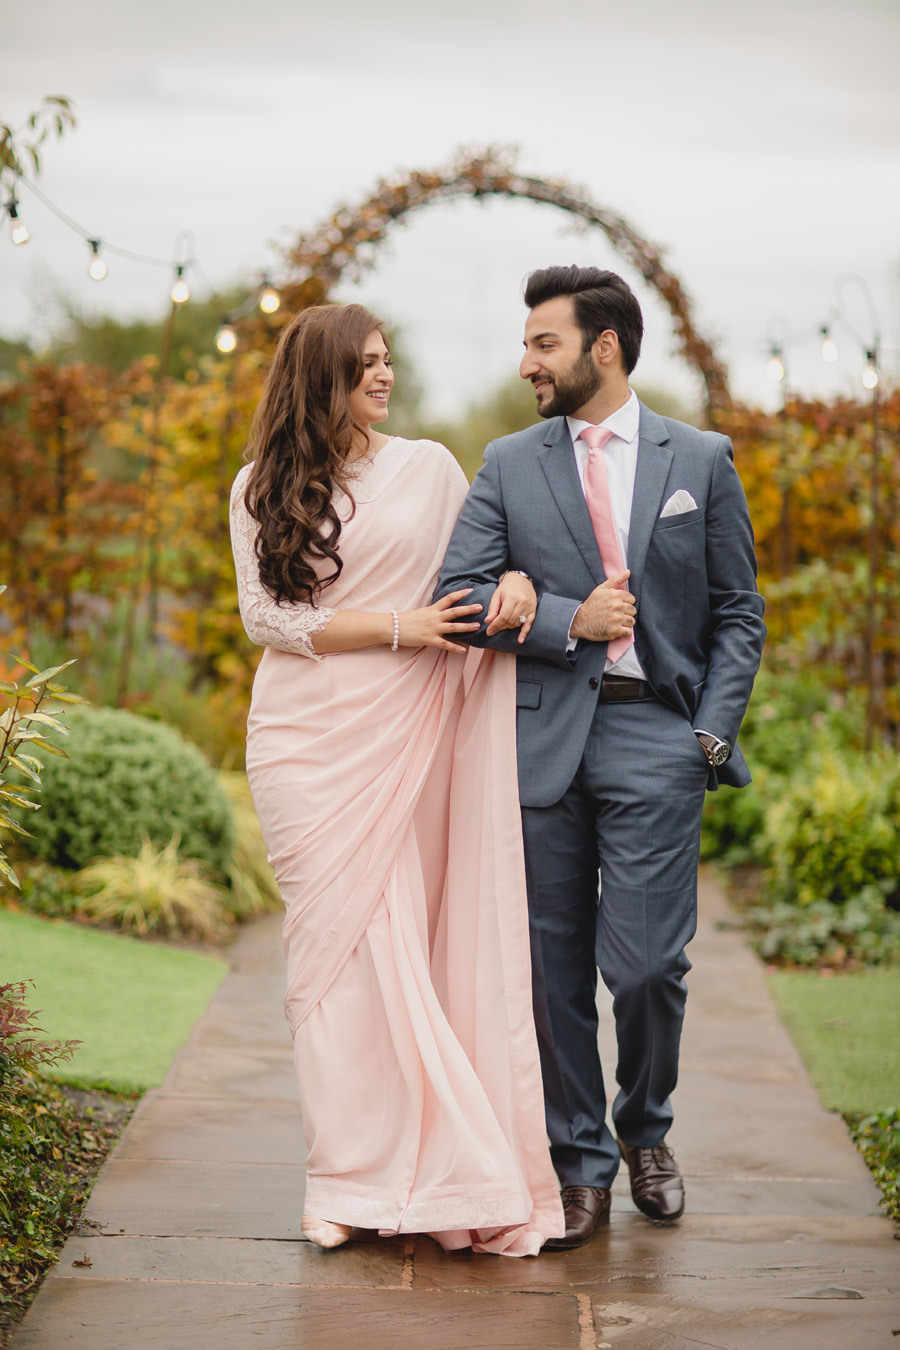 Cheshire wedding photographer Zehra Jagani and styling by The Wedding Fairy (6)